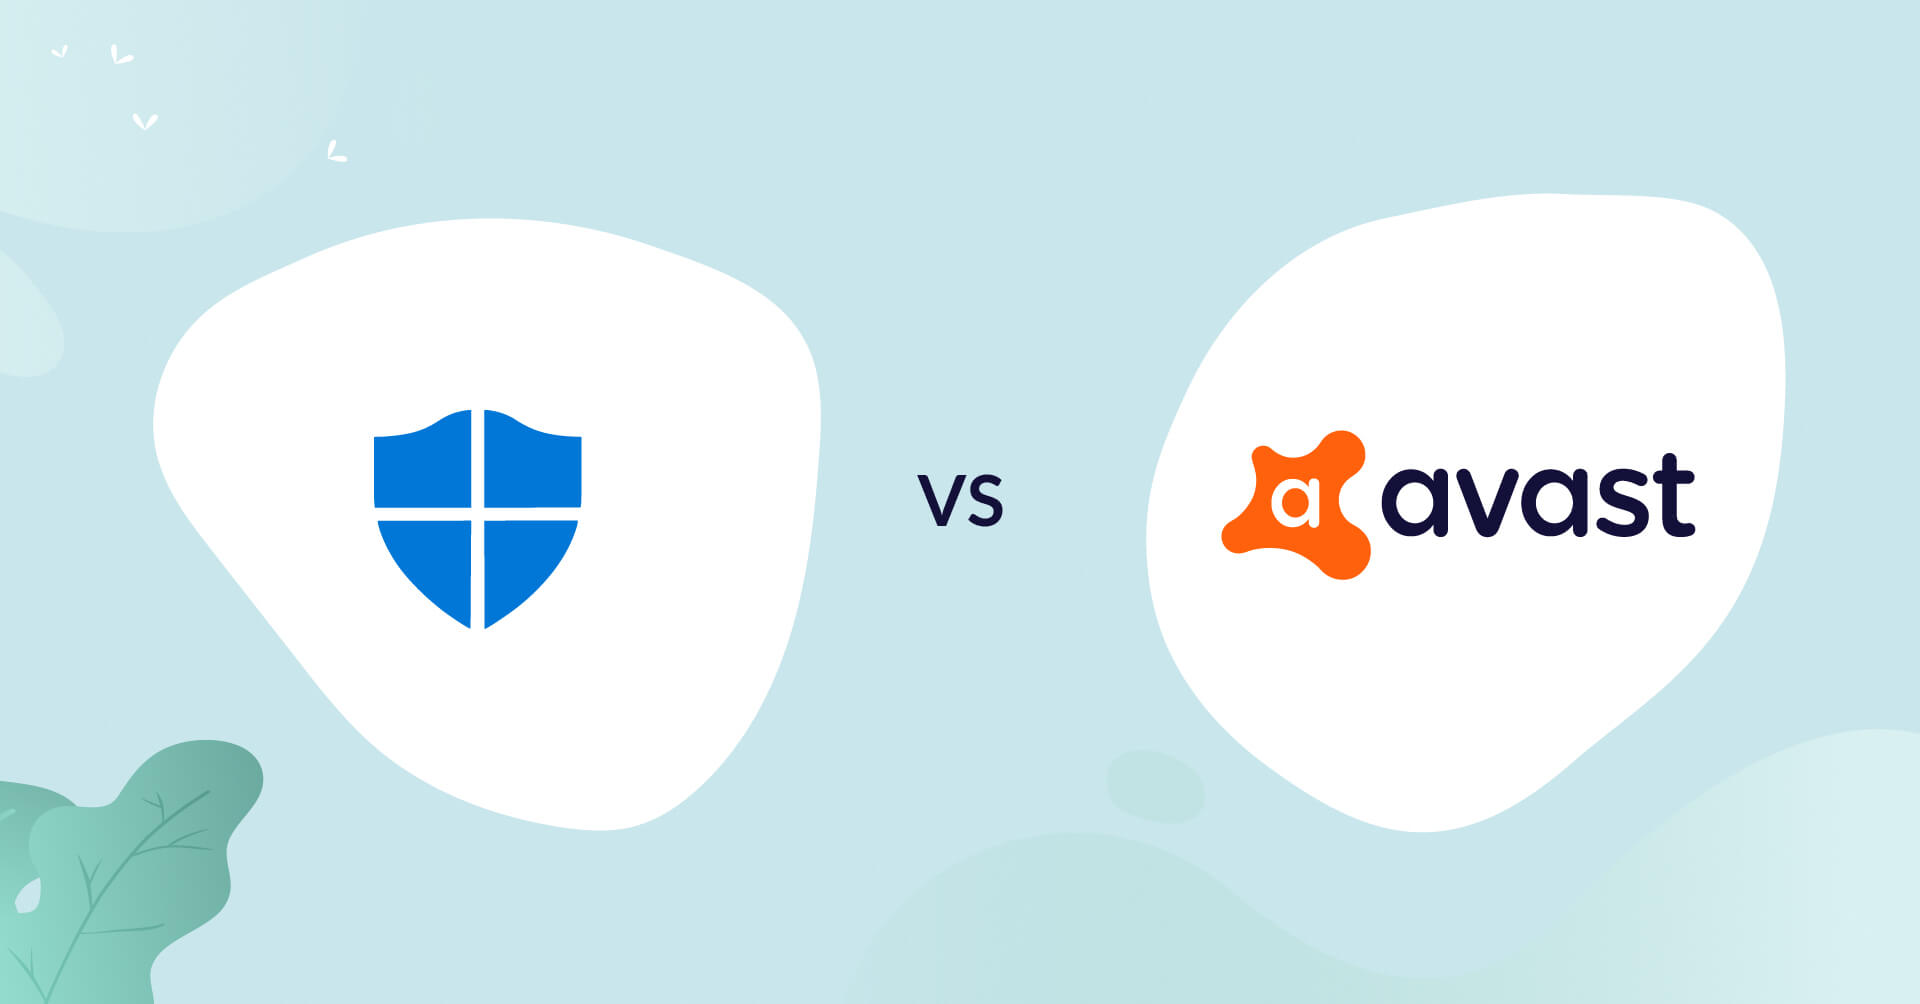 windows defender logo vs avast logo antivirus comparison header for how to choose article